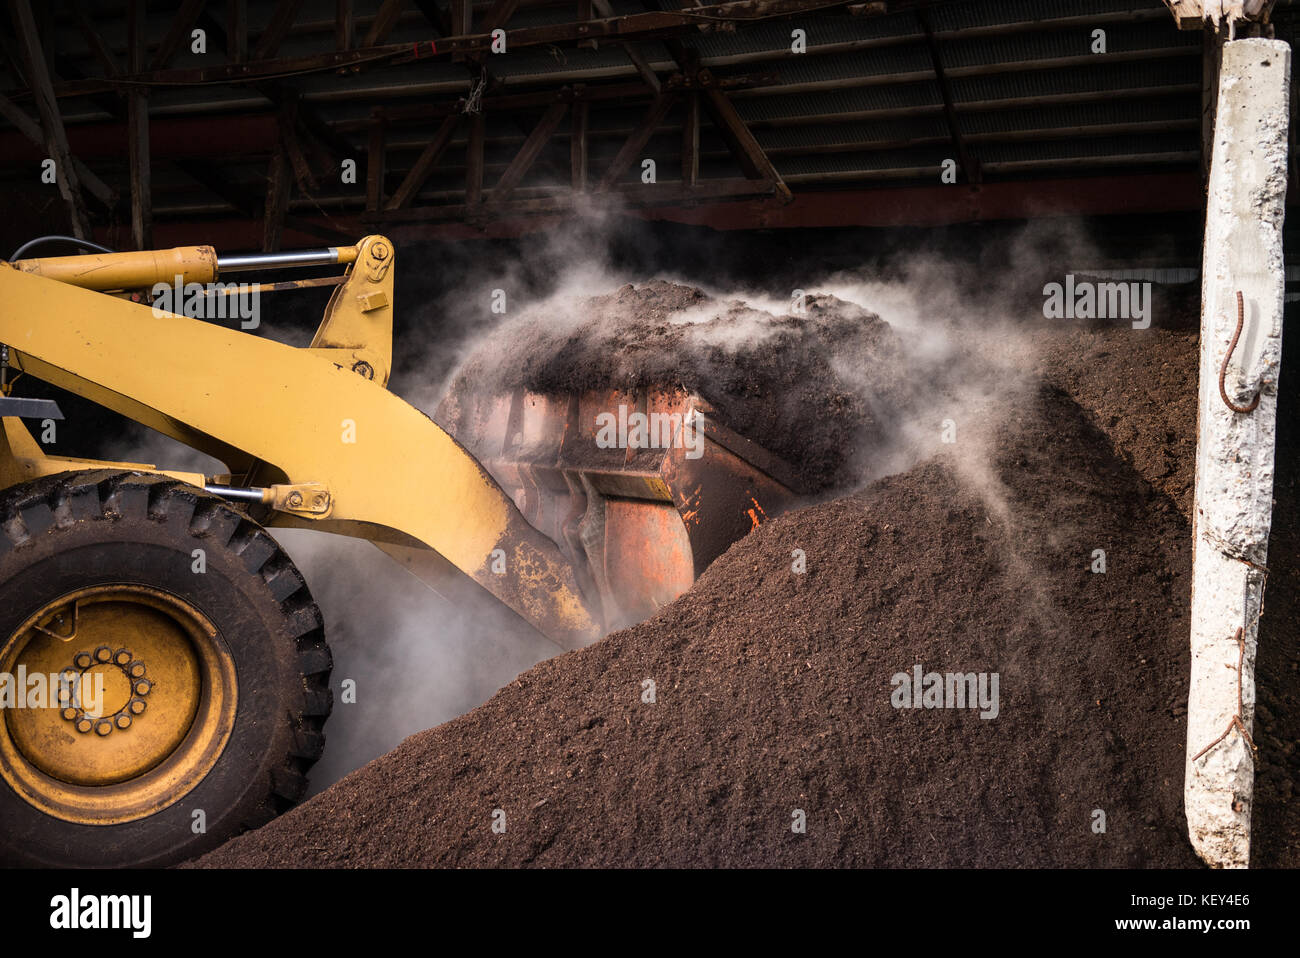 A tractor churning a large pile of steaming compost. - Stock Image